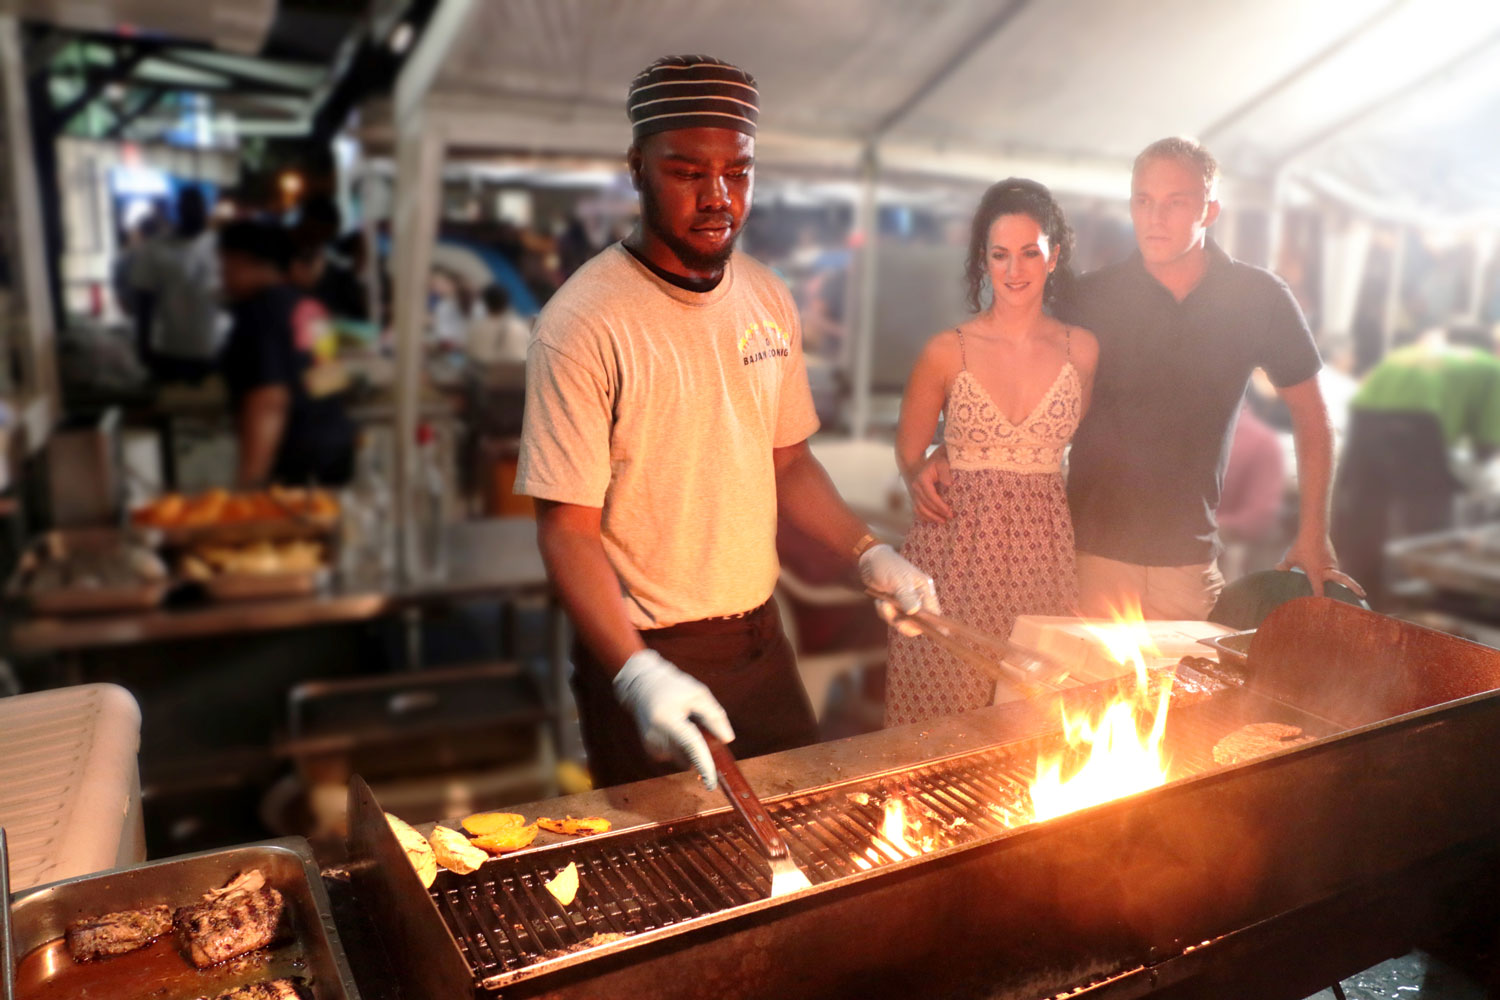 Barbados promotion SquareMeal chef grill guests